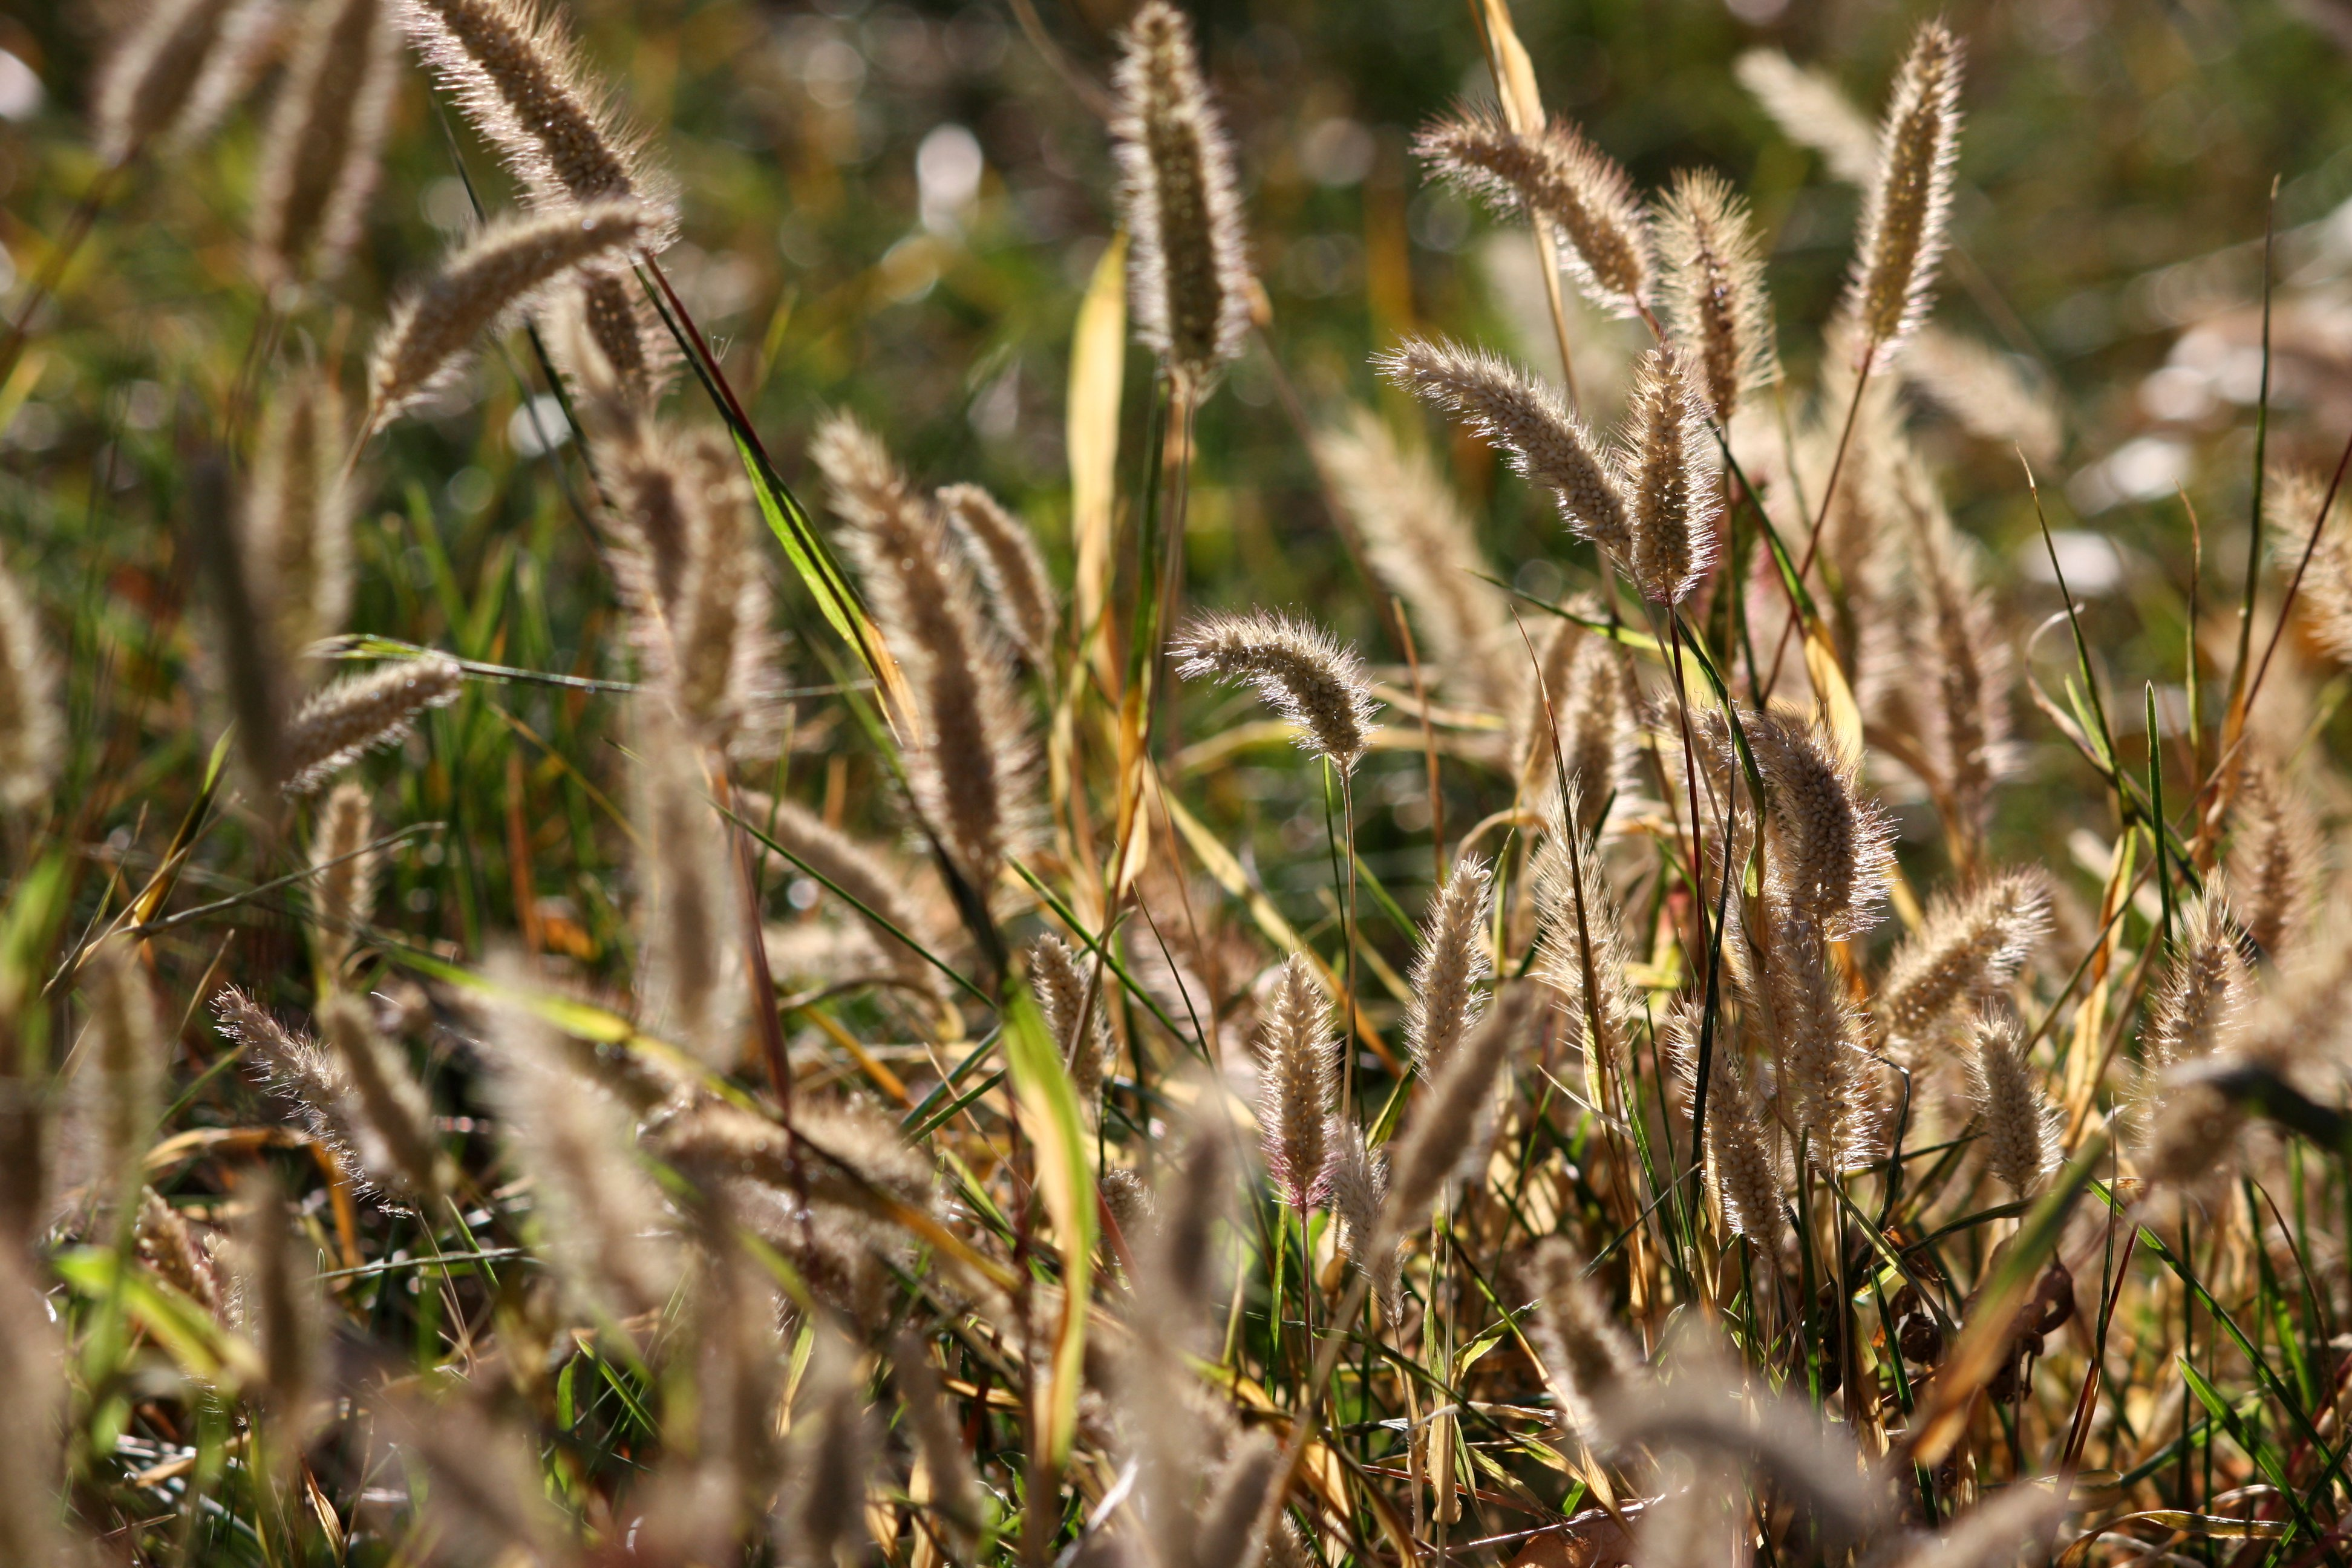 Wild Grass Seed Heads Picture Free Photograph Photos